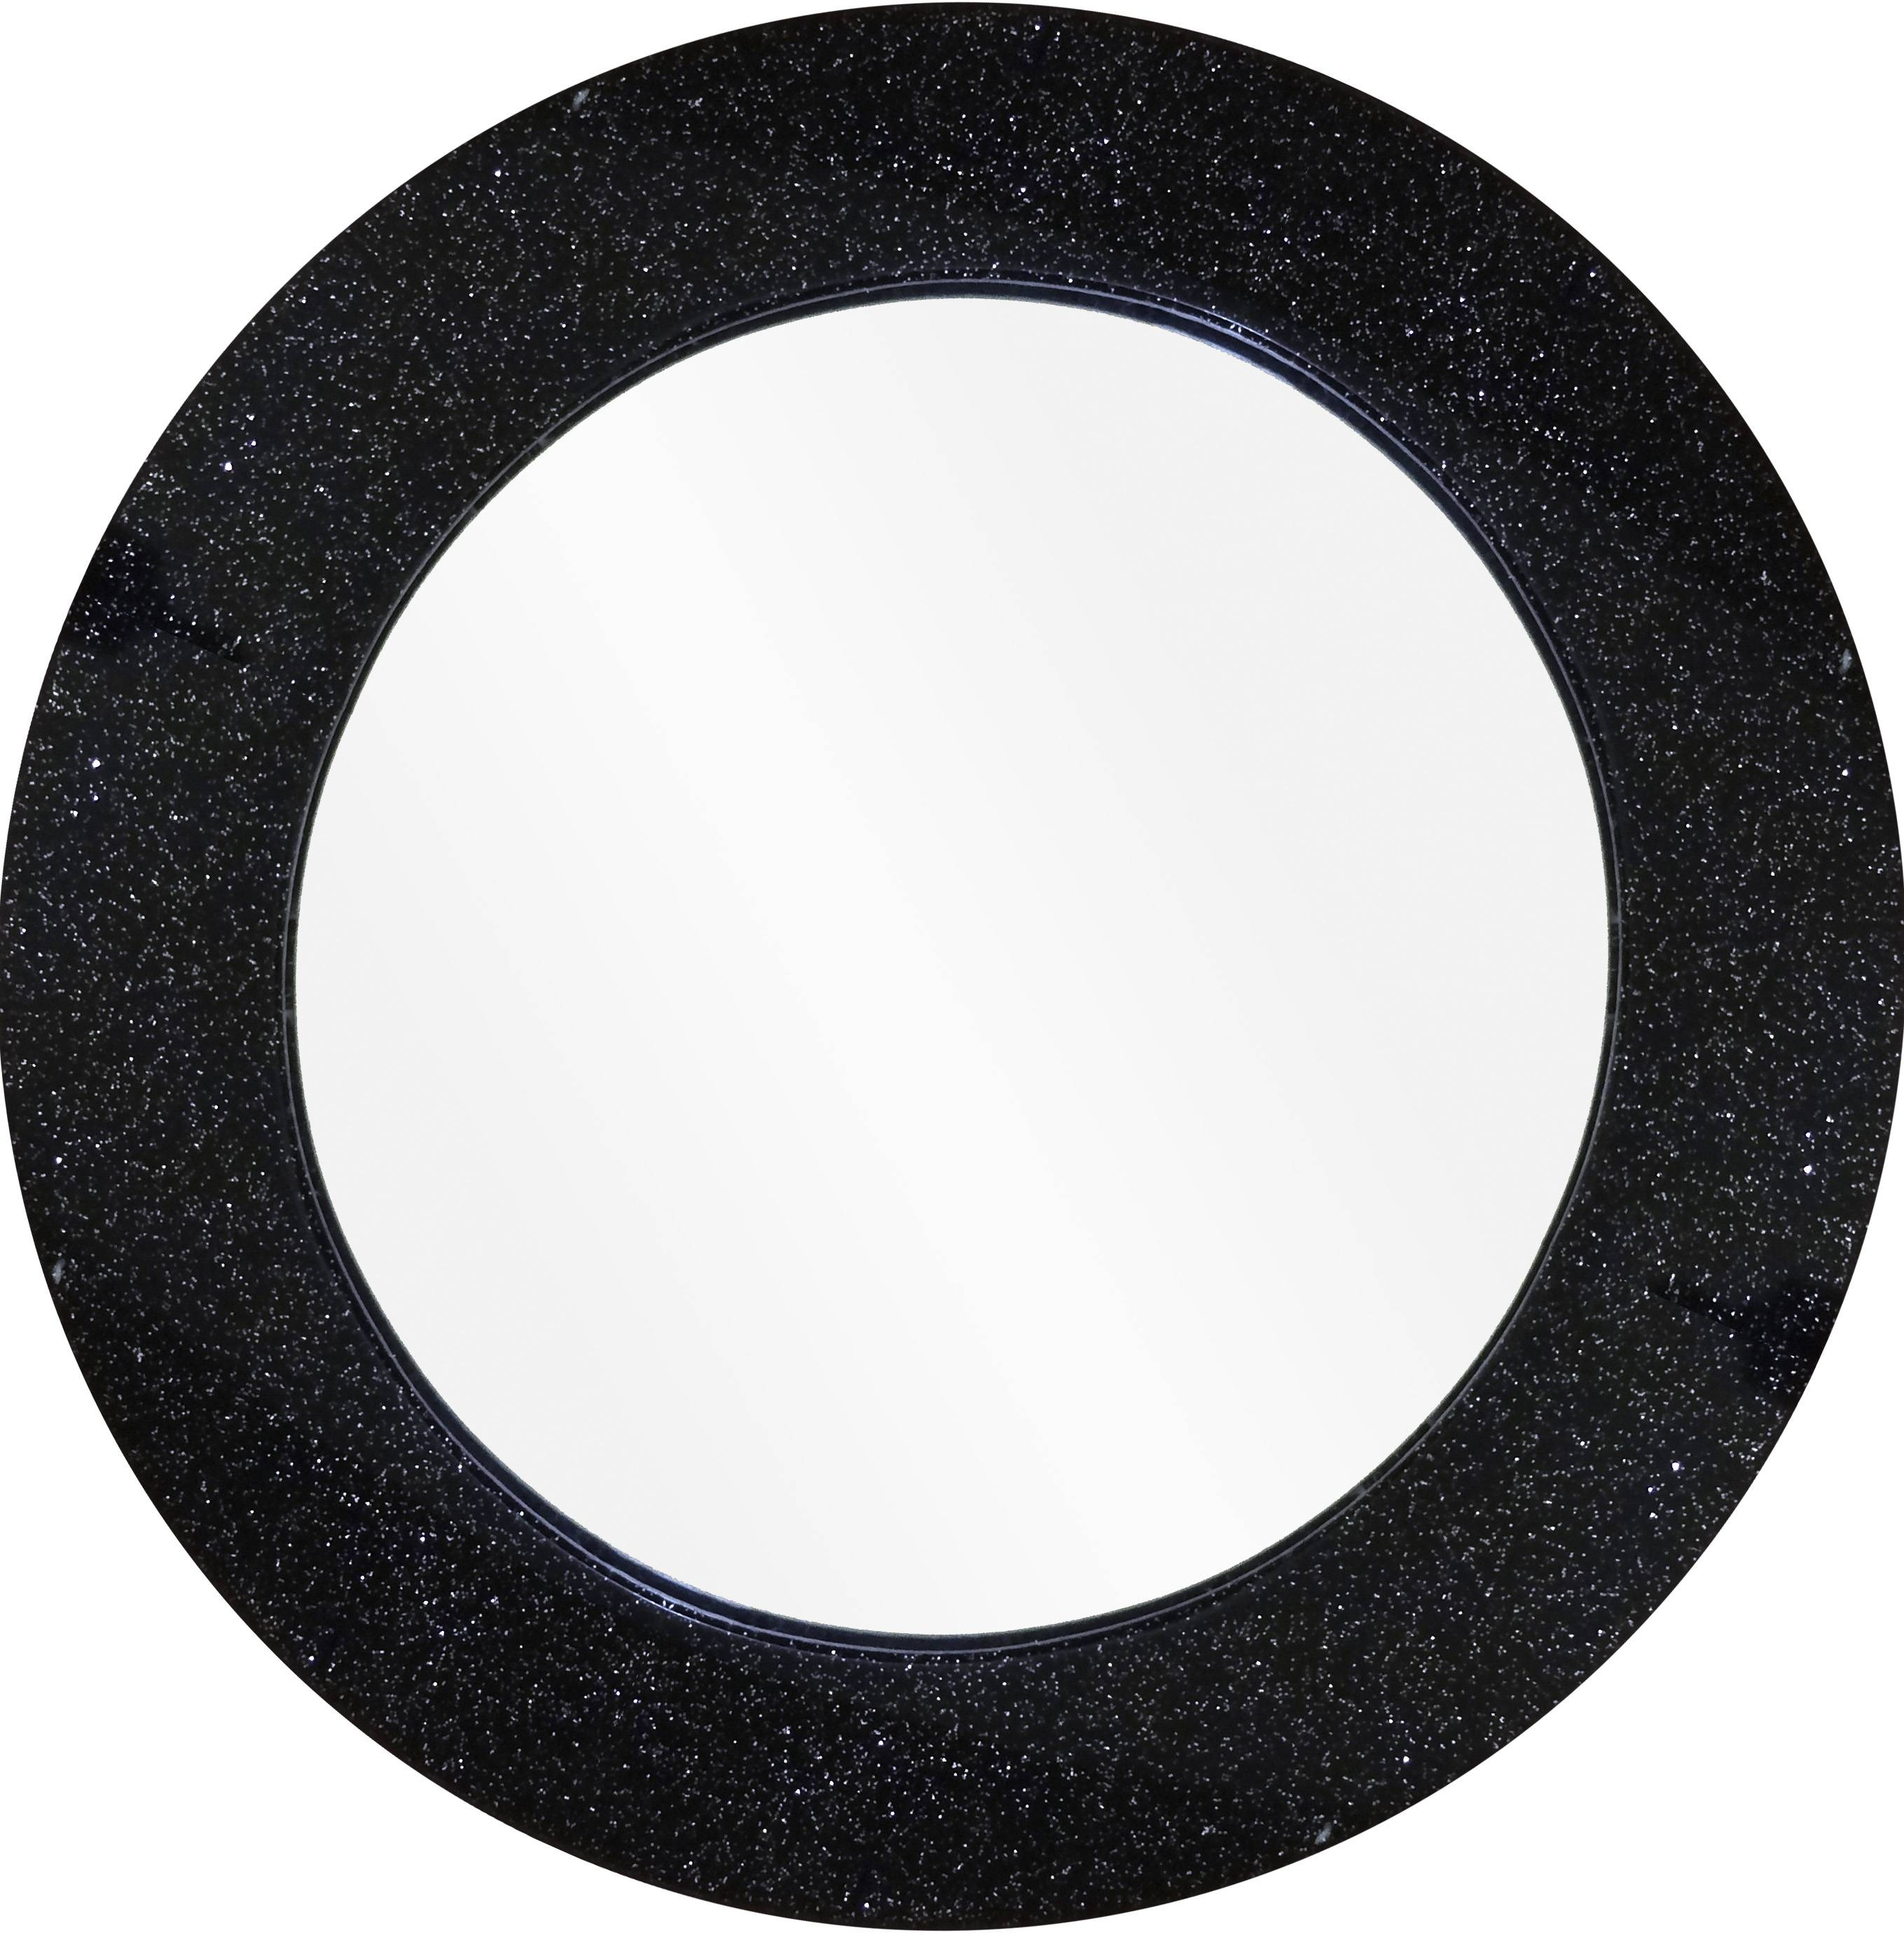 Black Glitter Mirror | Potty Training Concepts with regard to Silver Glitter Mirrors (Image 7 of 25)